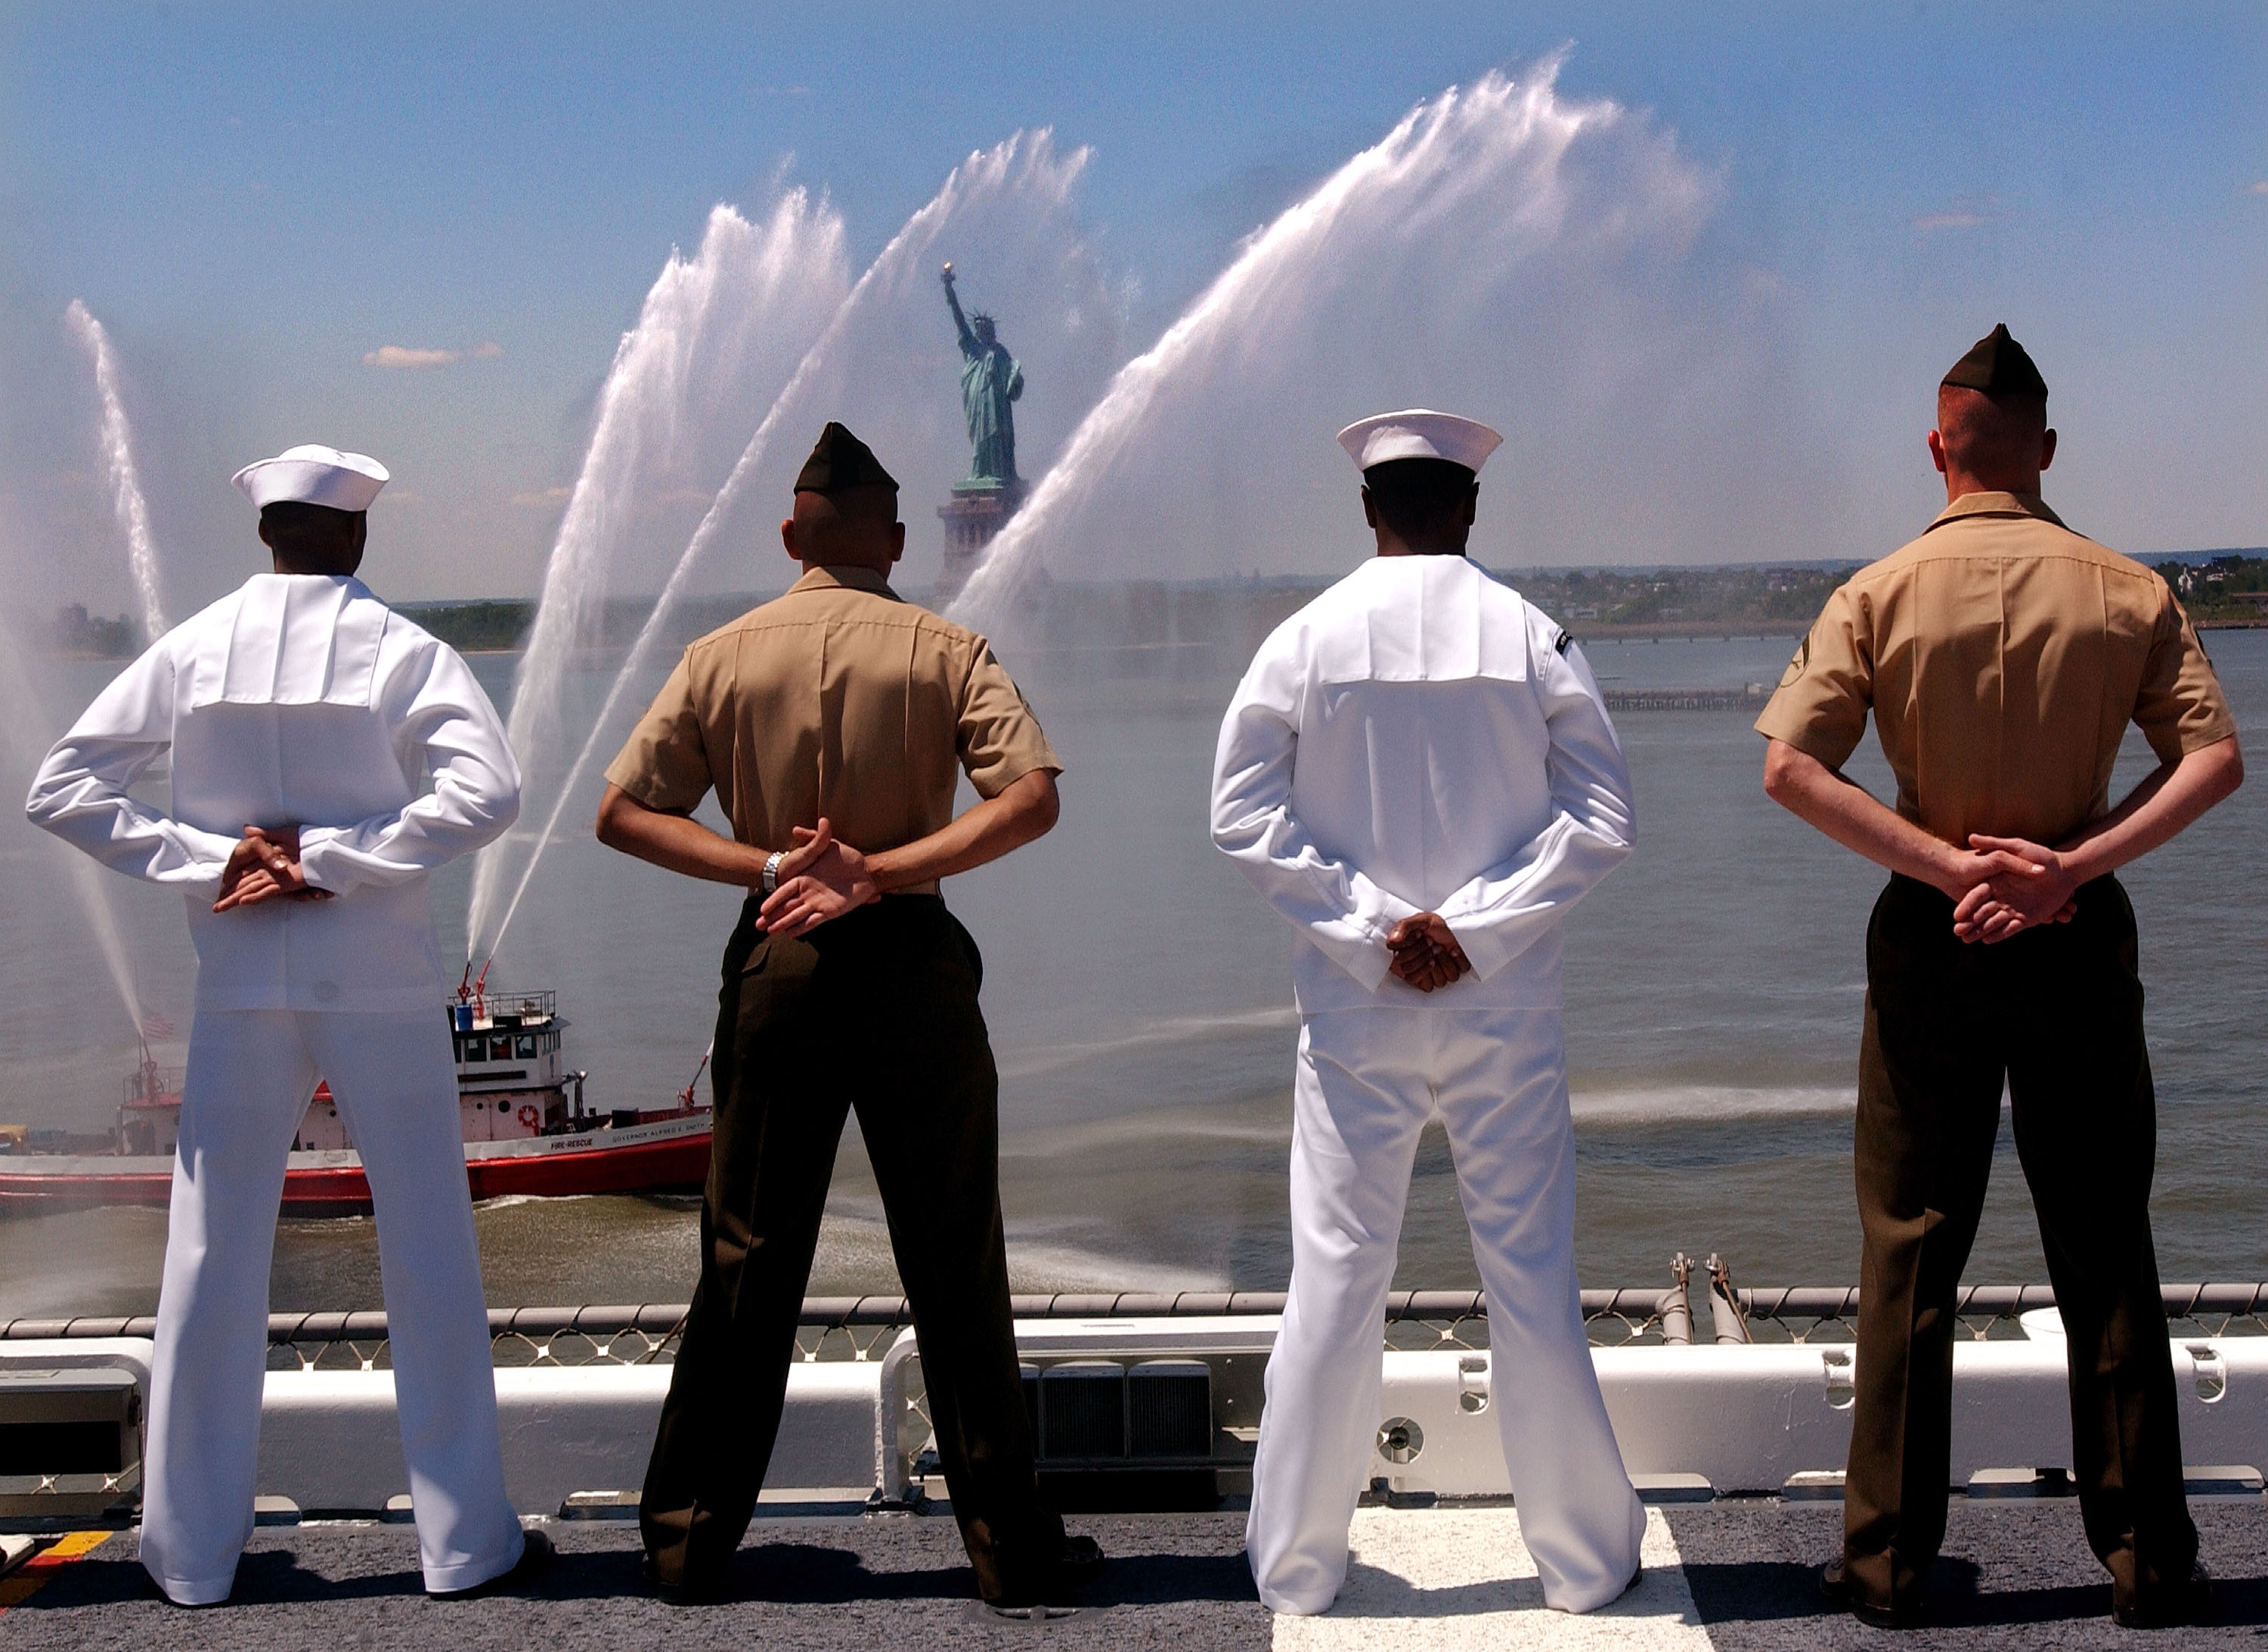 a history of the marines In their 241 years, the united states marines have made some incredible contributions to the united states as a vendor to all branches of the us military, we thought we d honor their rich history and celebrate their legendary achievements by sharing so.